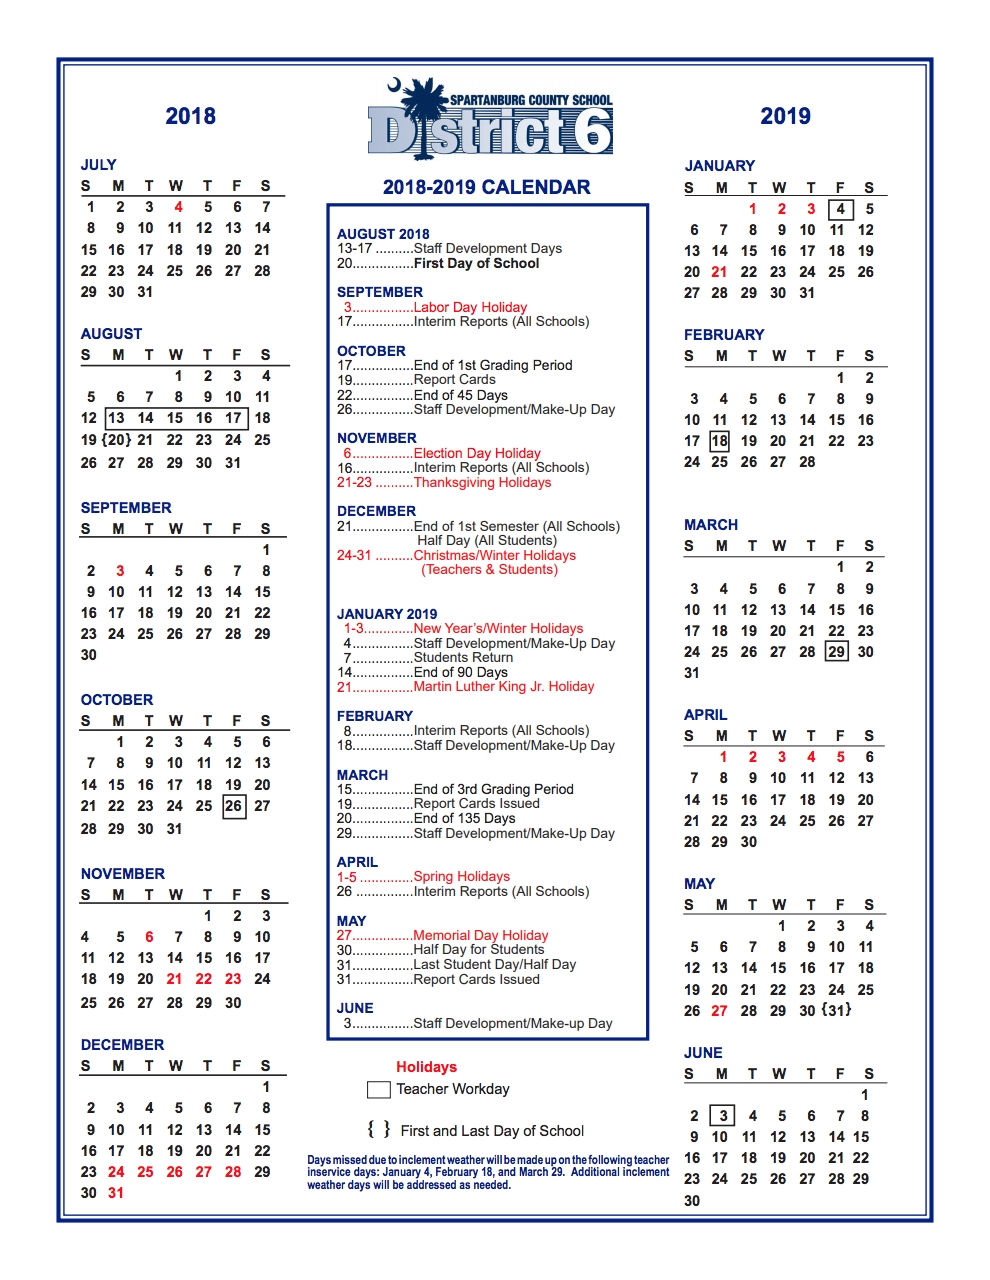 Spartanburg 6 School Calendar